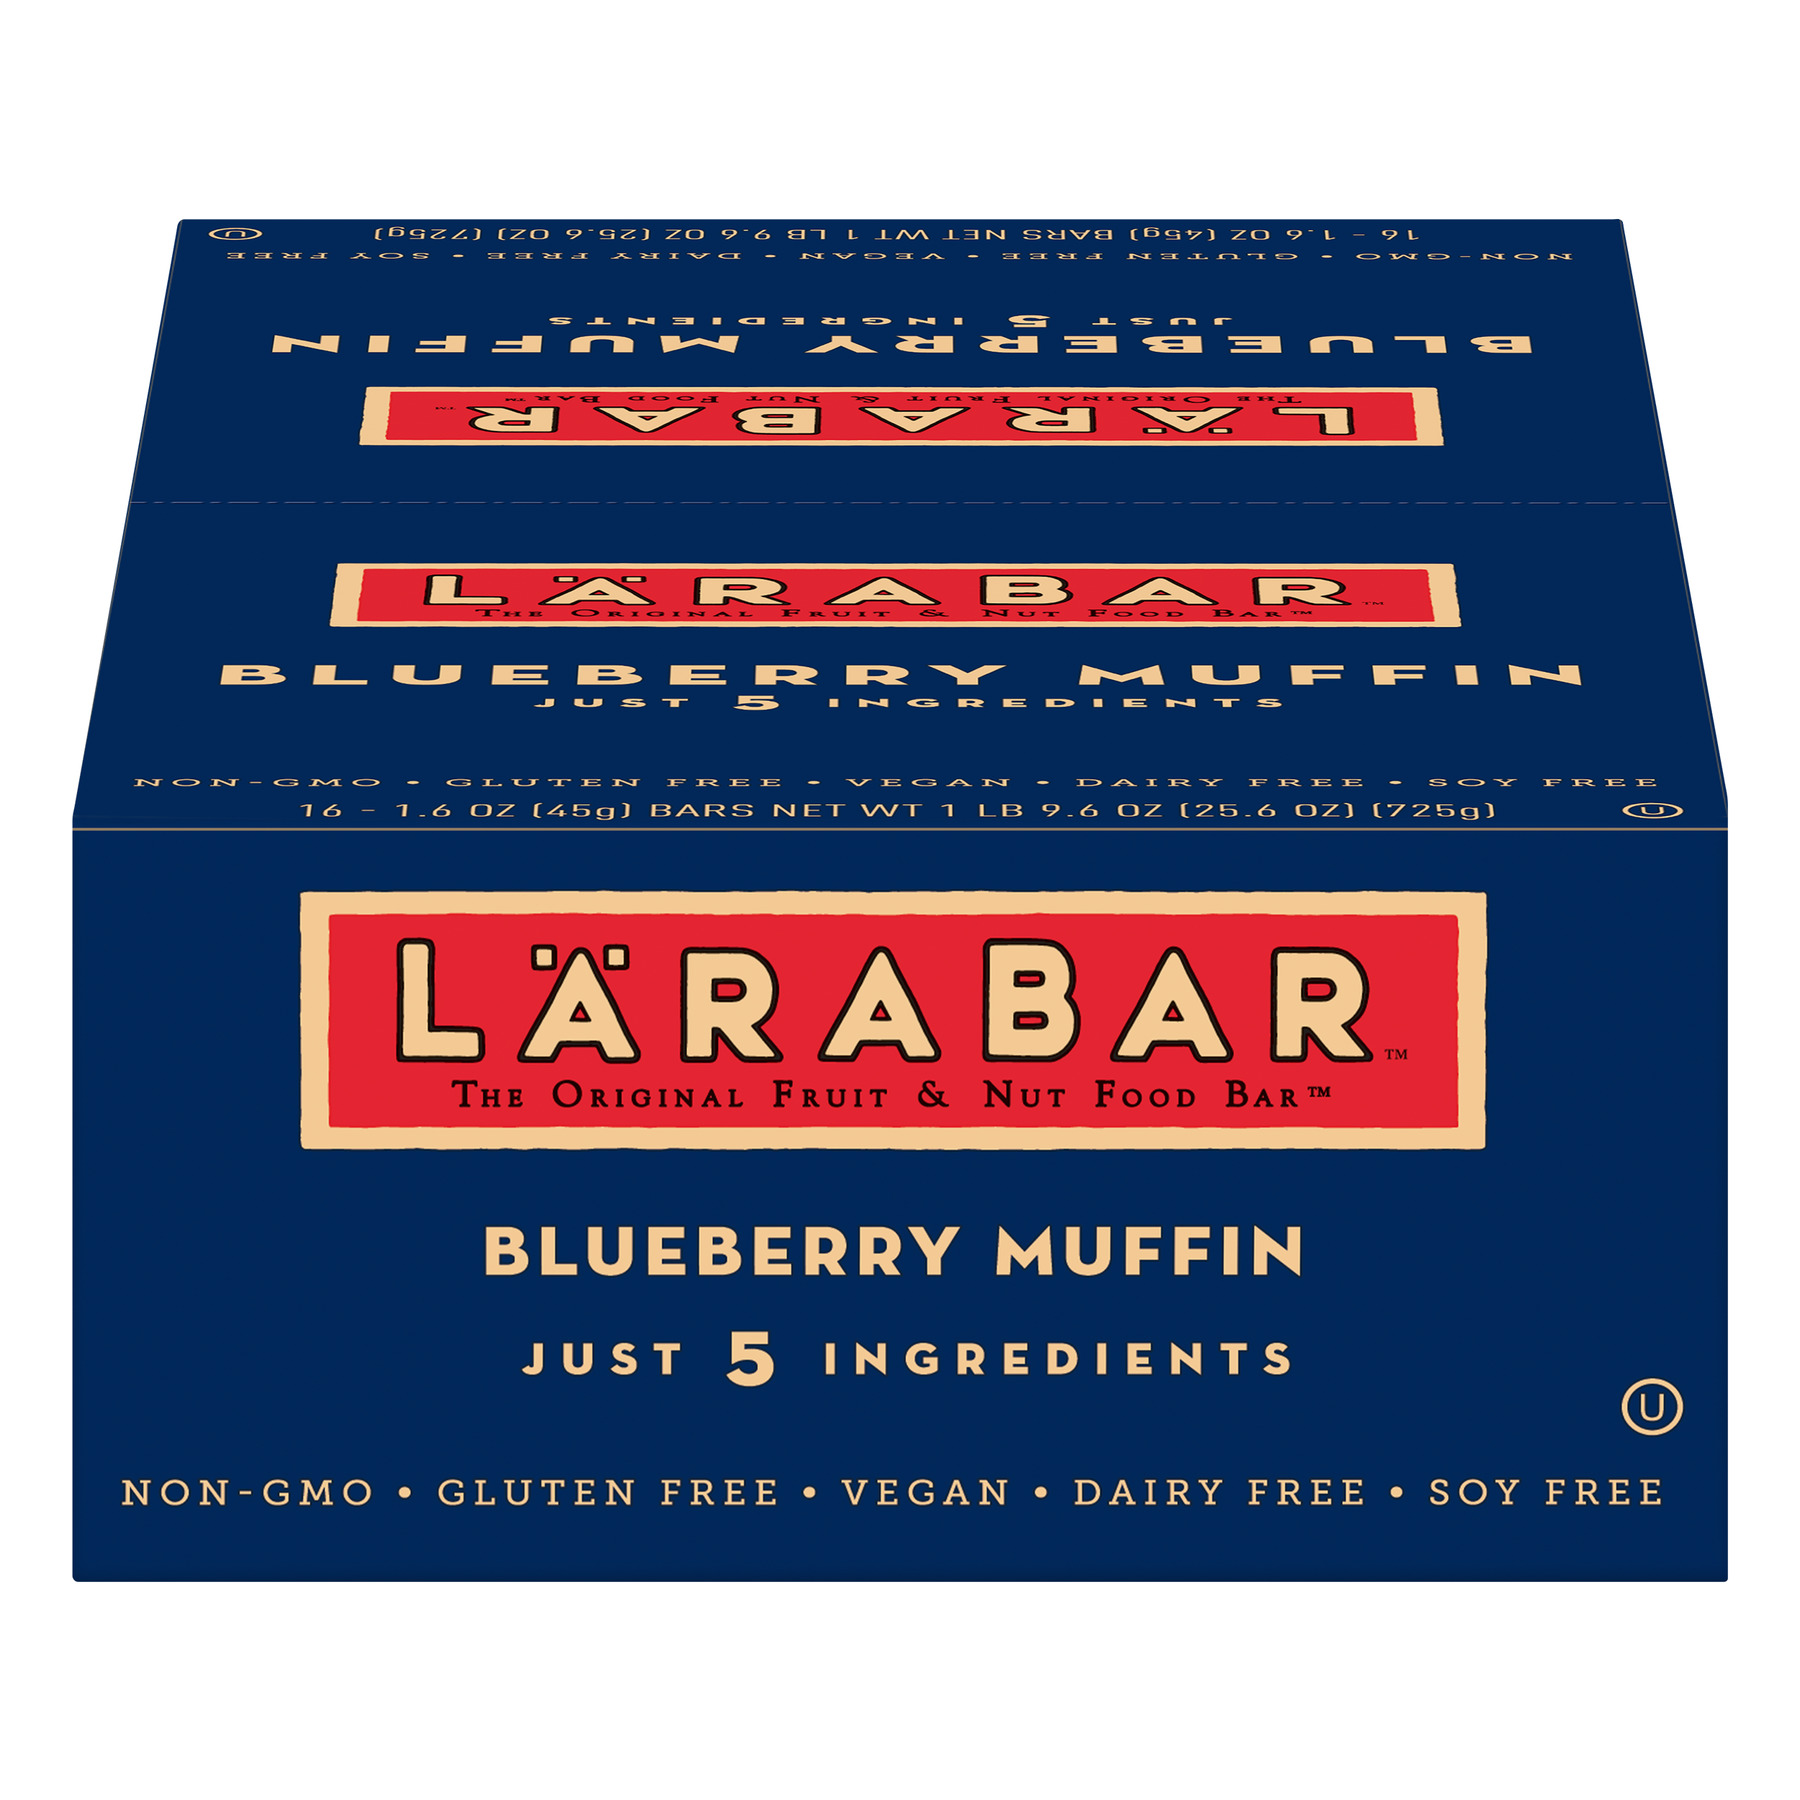 Larabar Gluten Free Blueberry Muffin Fruit and Nut Bars 16 ct, 25.6 oz